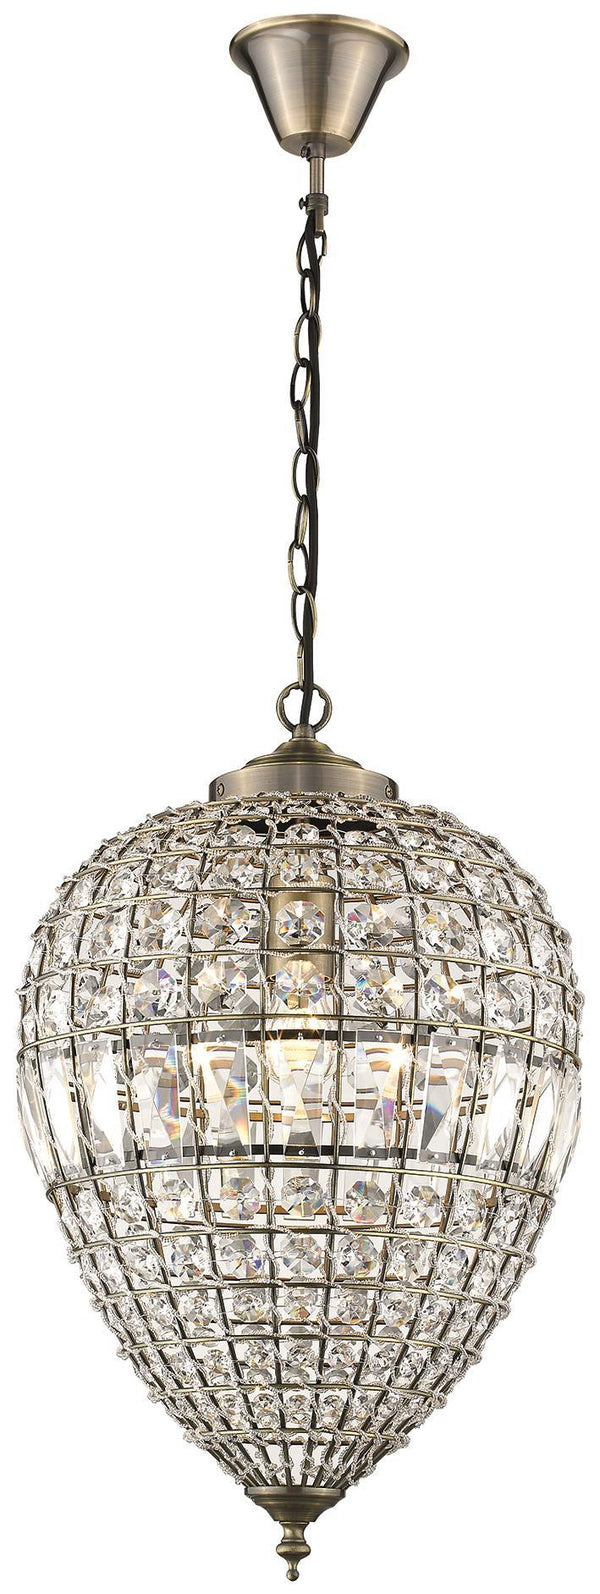 SND Lighting SND188 Fiona Single Pendant Antique Brass - SND Electrical Ltd